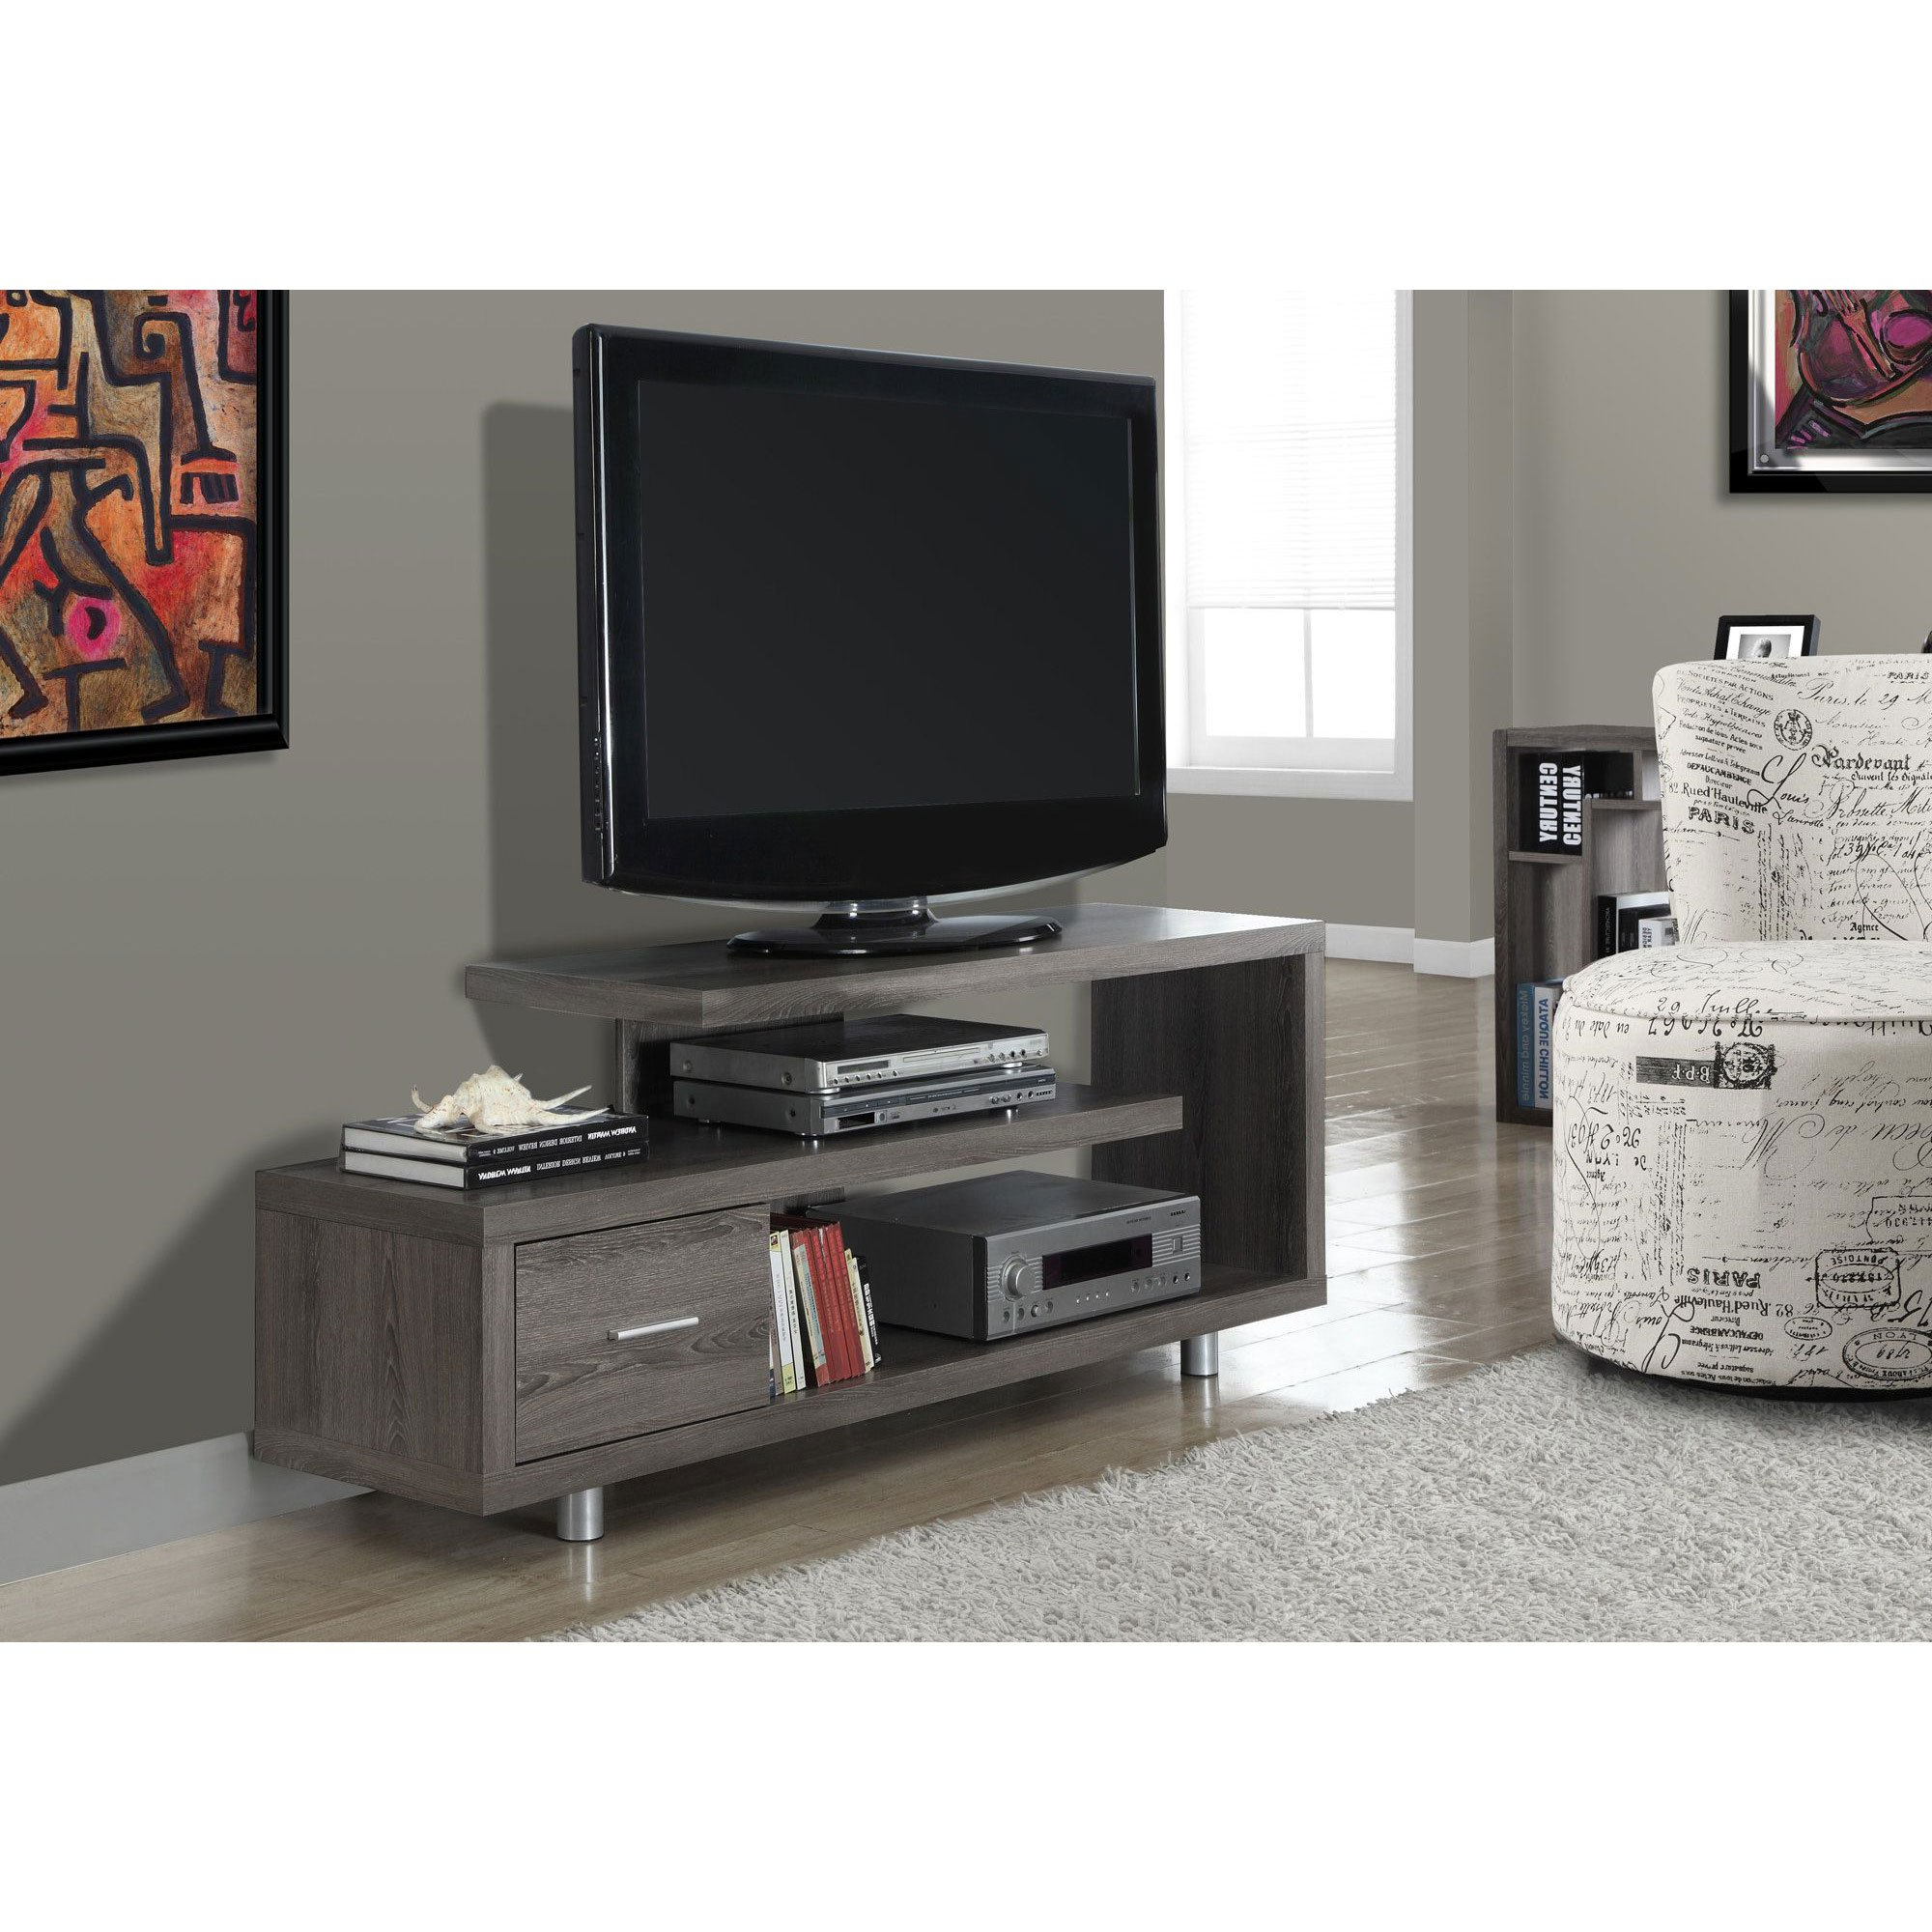 "Monarch Tv Stand White With 1 Drawer For Tvs Up To 47""l – Walmart In Maddy 50 Inch Tv Stands (Gallery 8 of 20)"